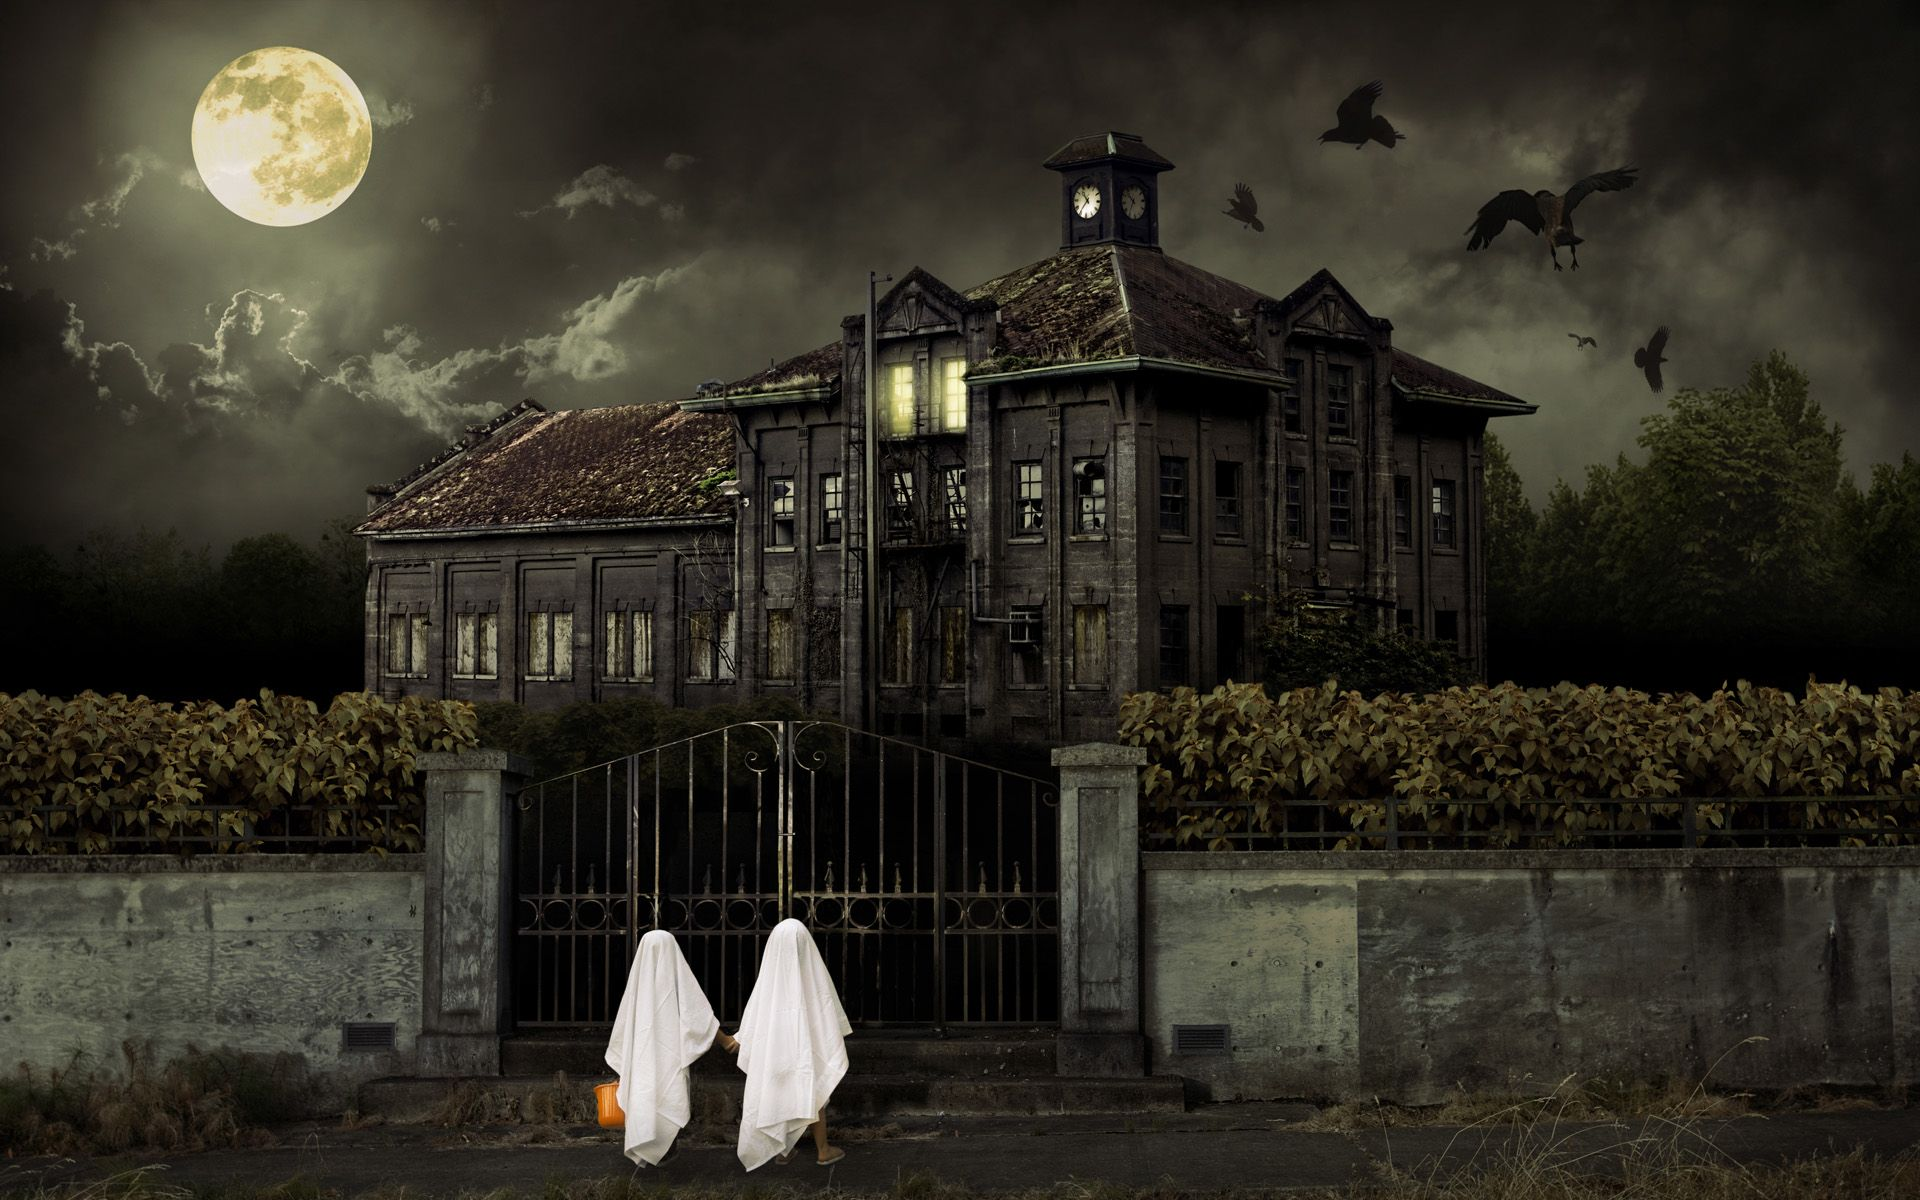 Halloween Spooky House.Spooky Wallpapers Halloween Scary House Hd Wallpaper